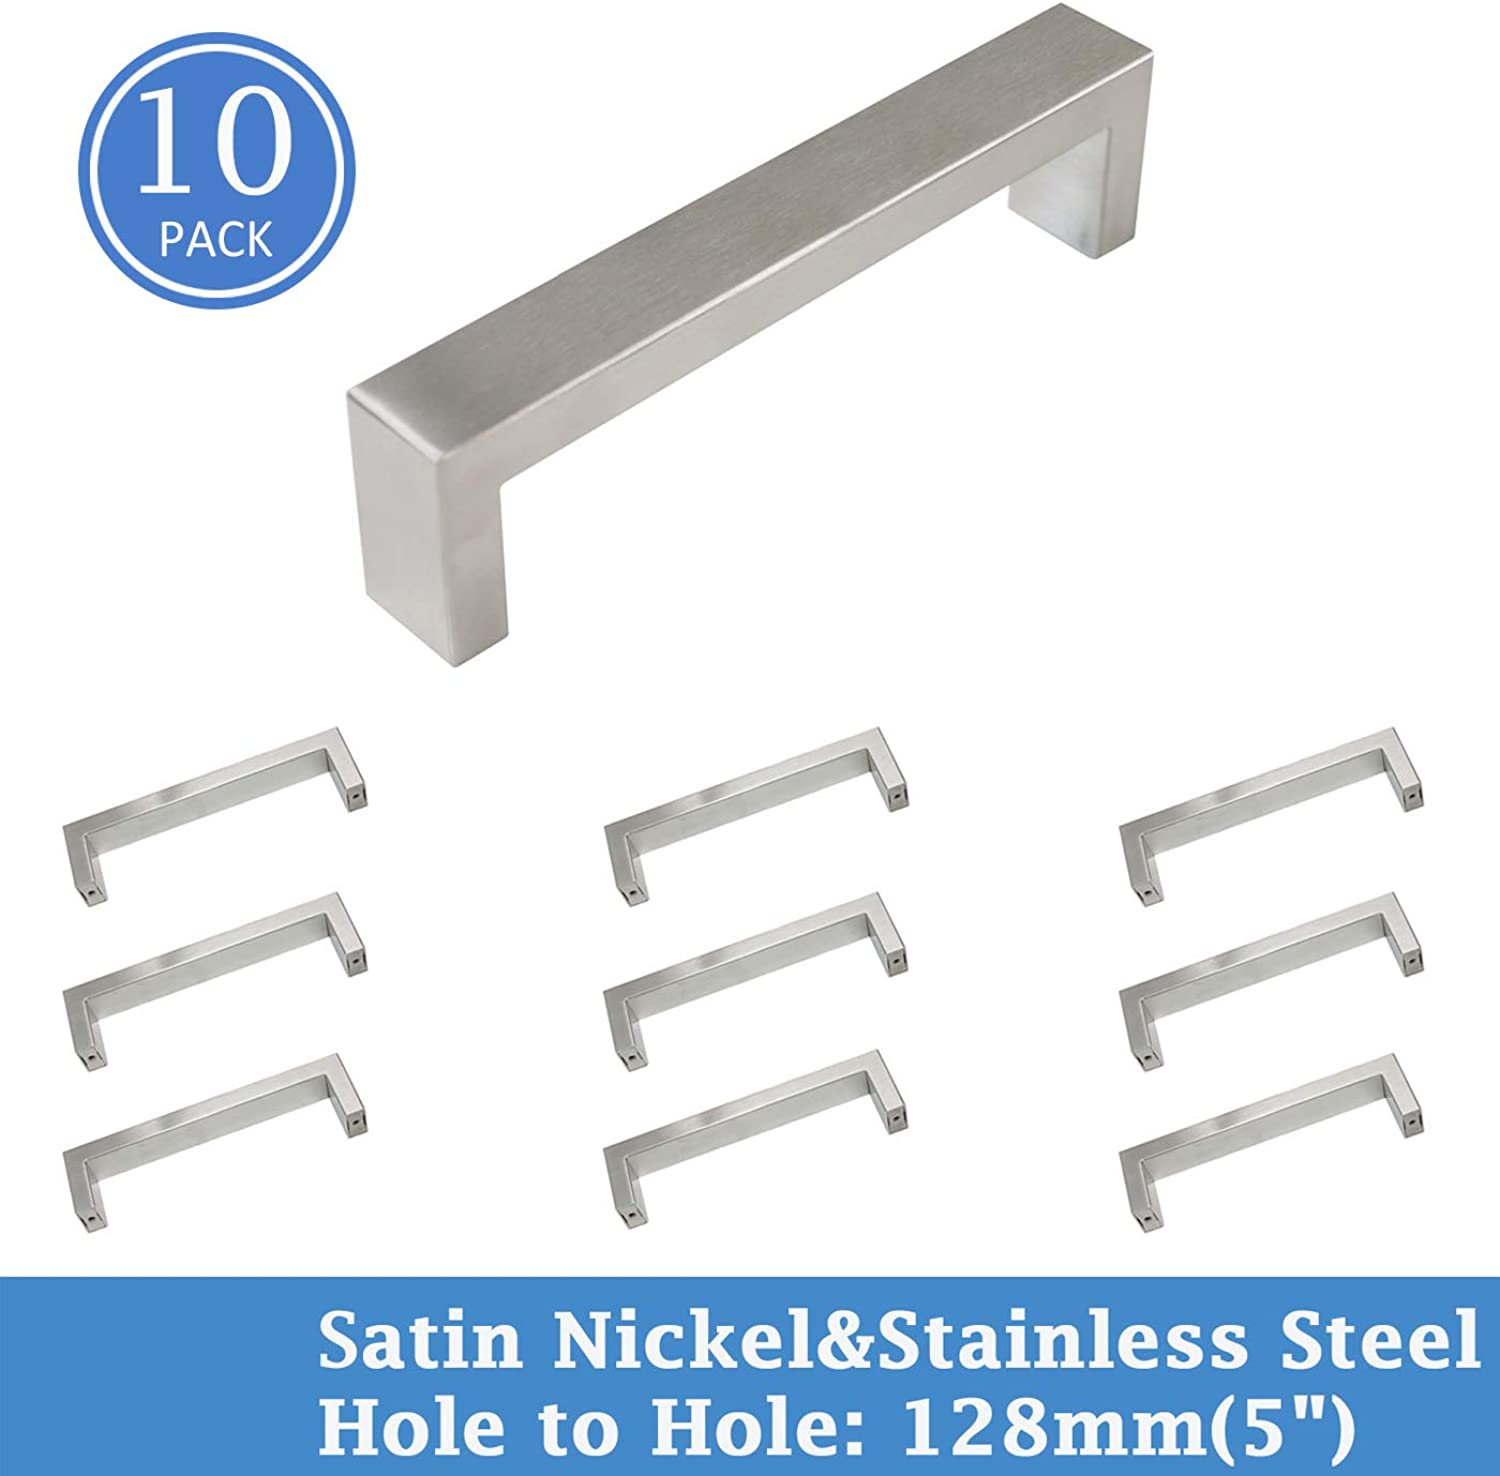 Knobonly Stainless Steel Cabinet Pull Handle 20mm Wide 5 inch Hole Centers Square Modern Kitchen Cupboard Handles 10 Pack